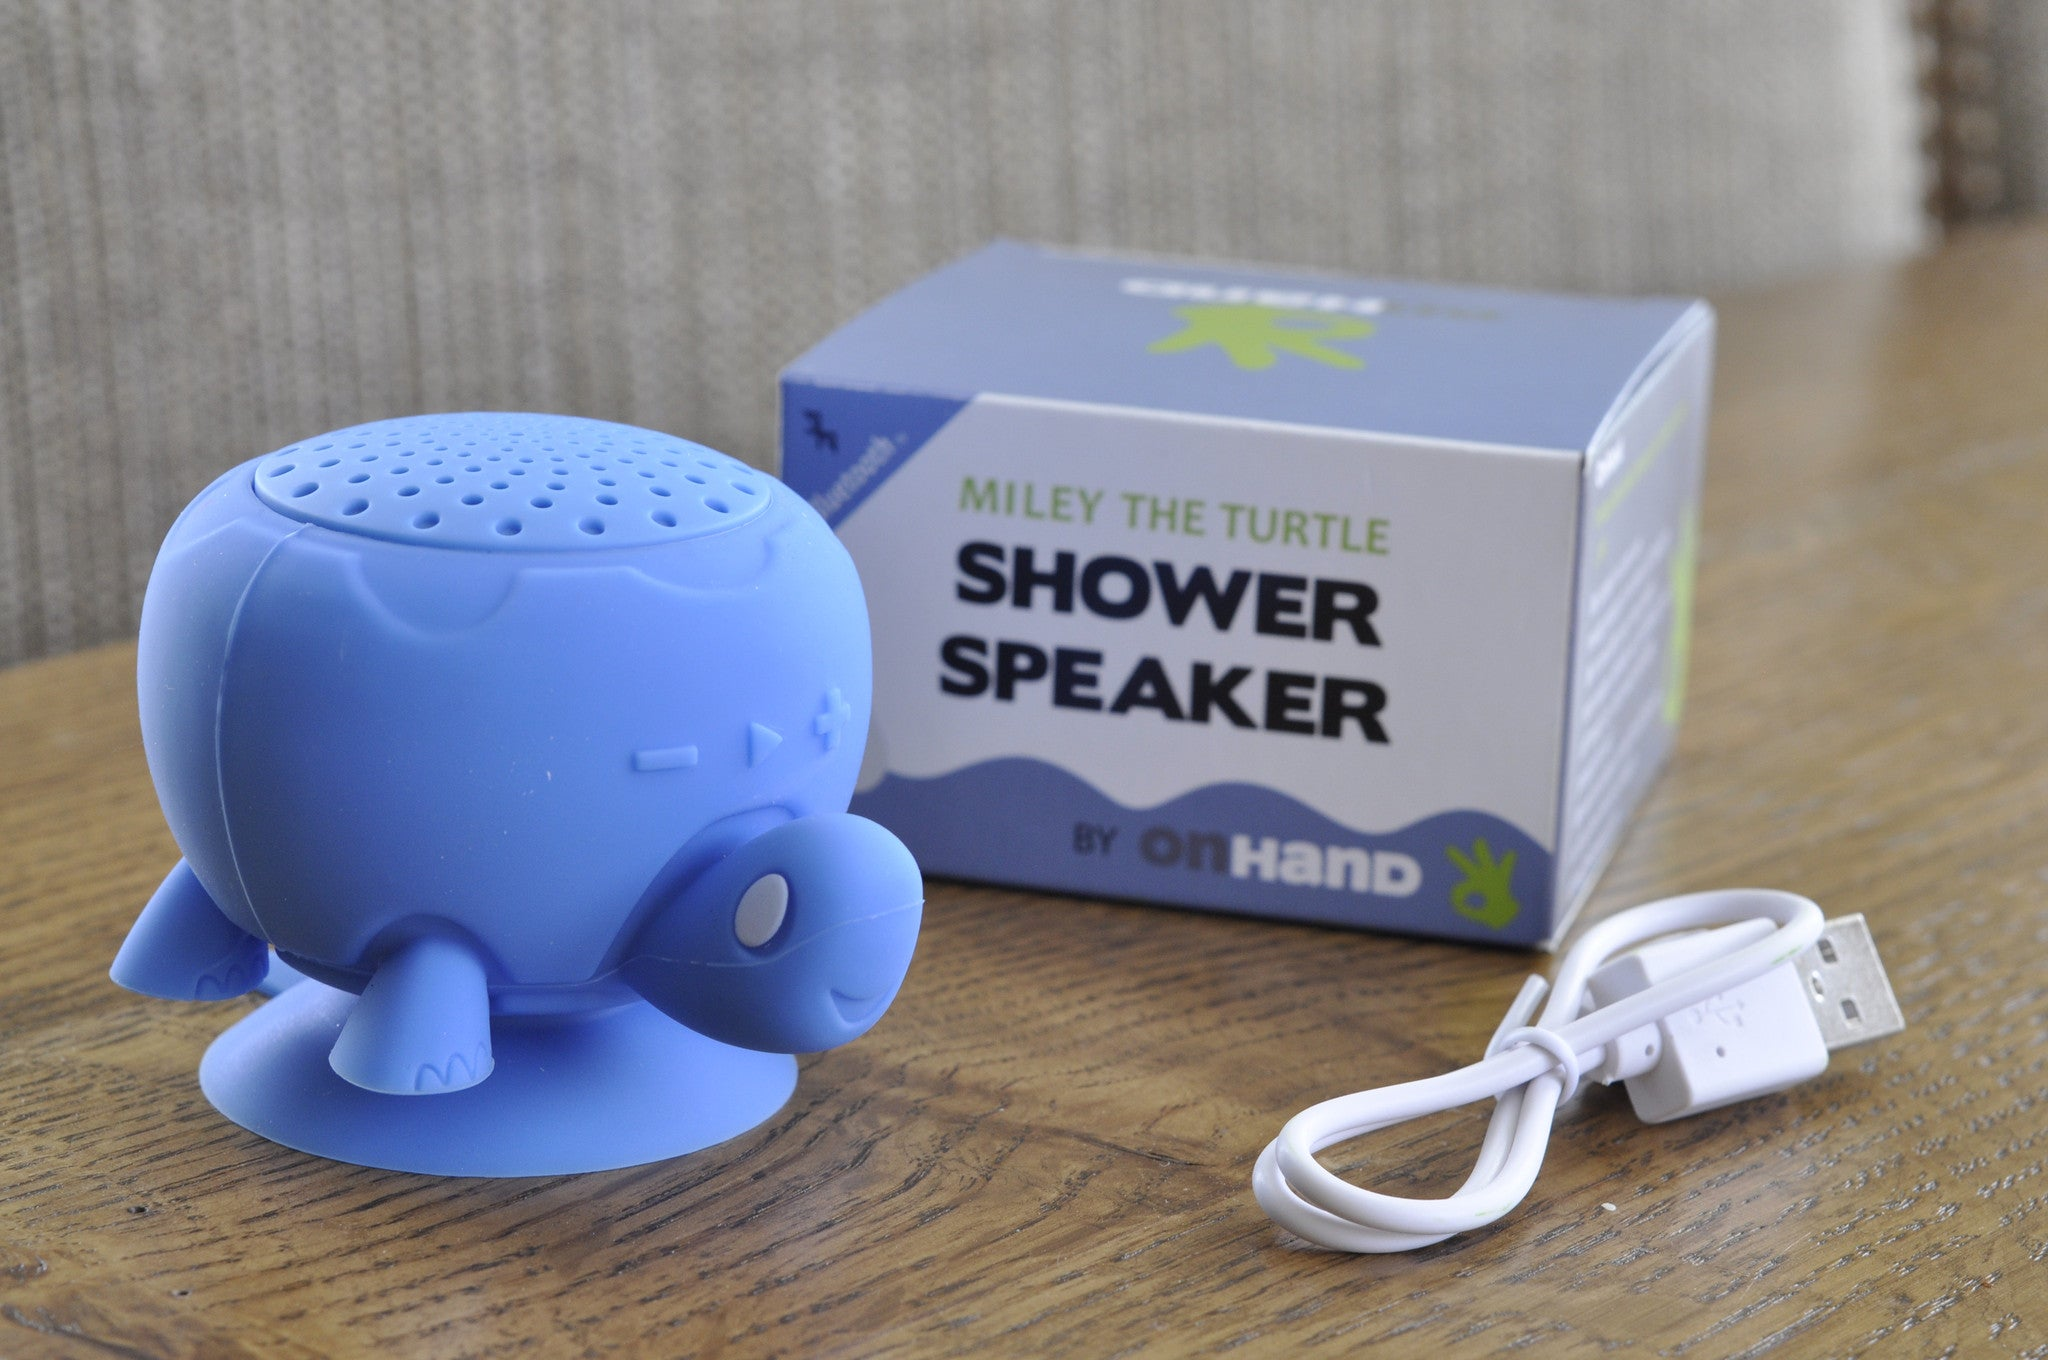 Miley Blue Turtle Shower Speaker